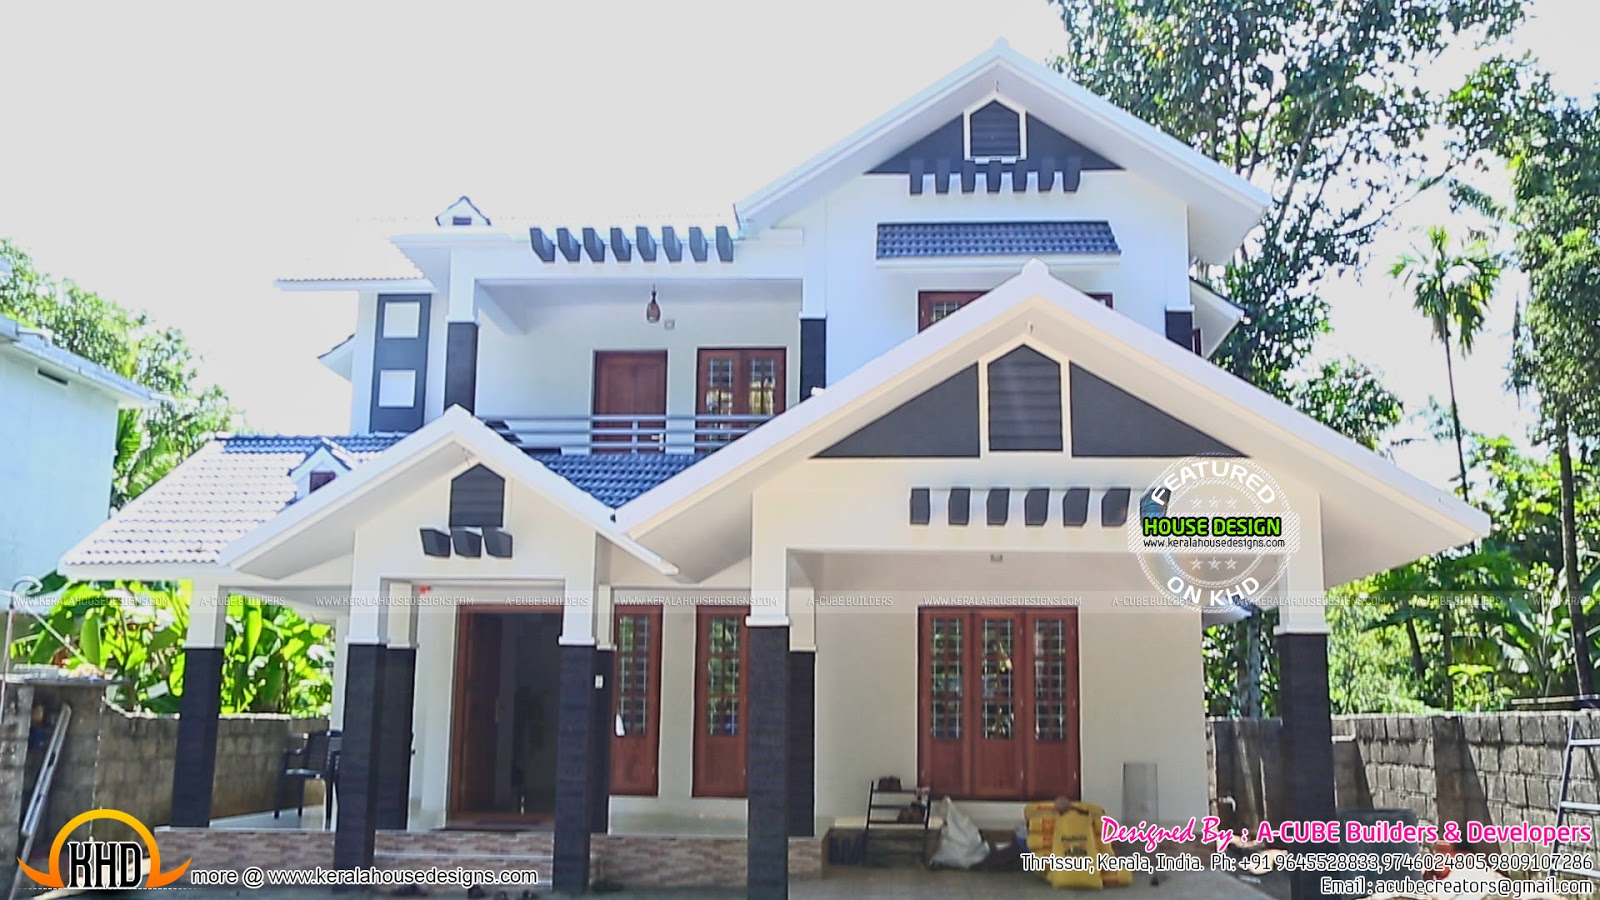 New house plans for 2016 starts here kerala home design for New house plans